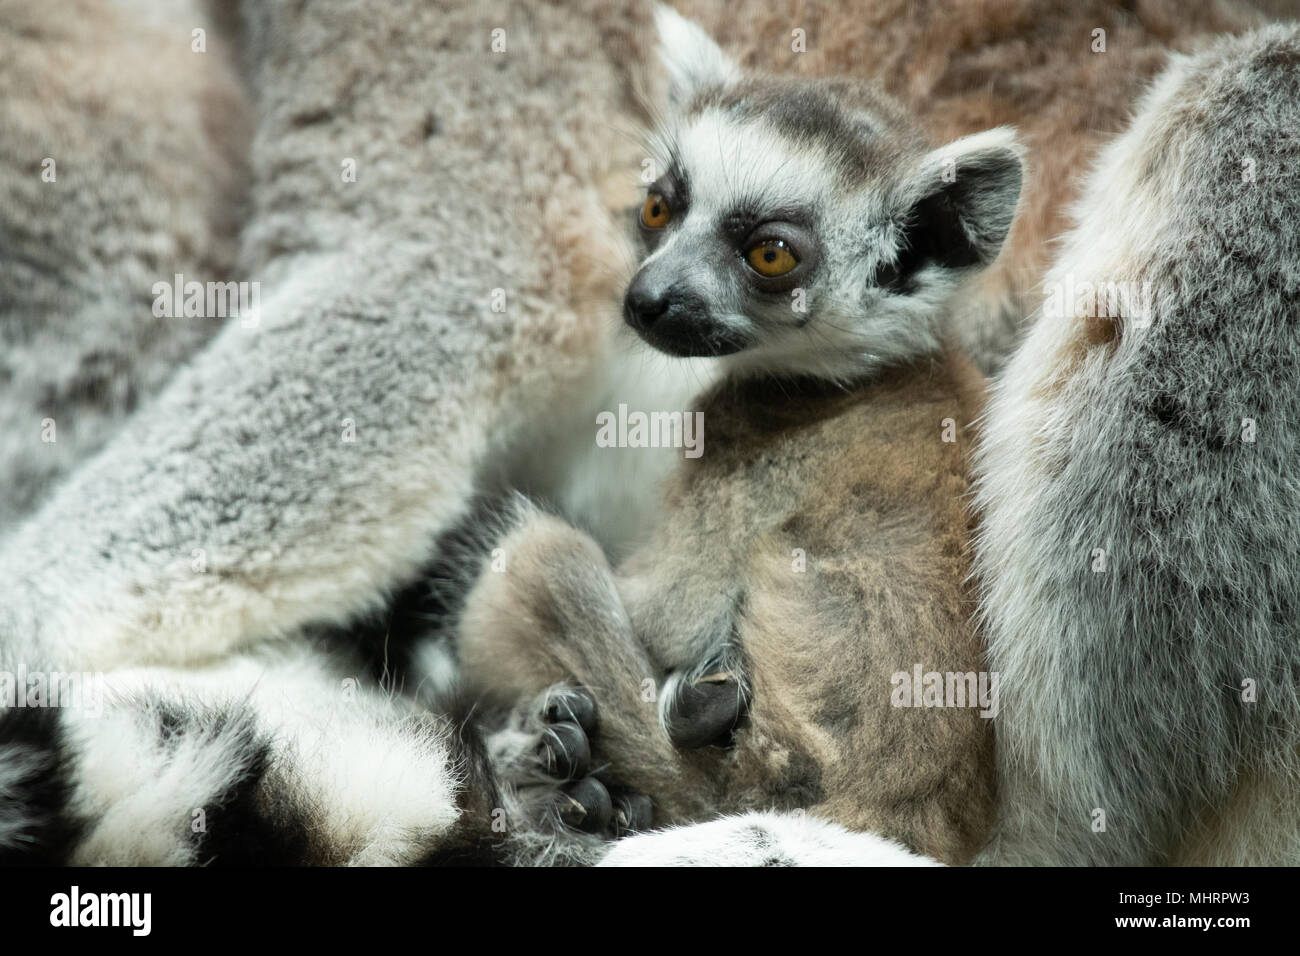 96e8af05052c9 Three Ring-Tailed Lemurs have been born at Bristol Zoo Gardens within three  days of each other. Twins were born to mum Ethel and less than 72 hours  later ...